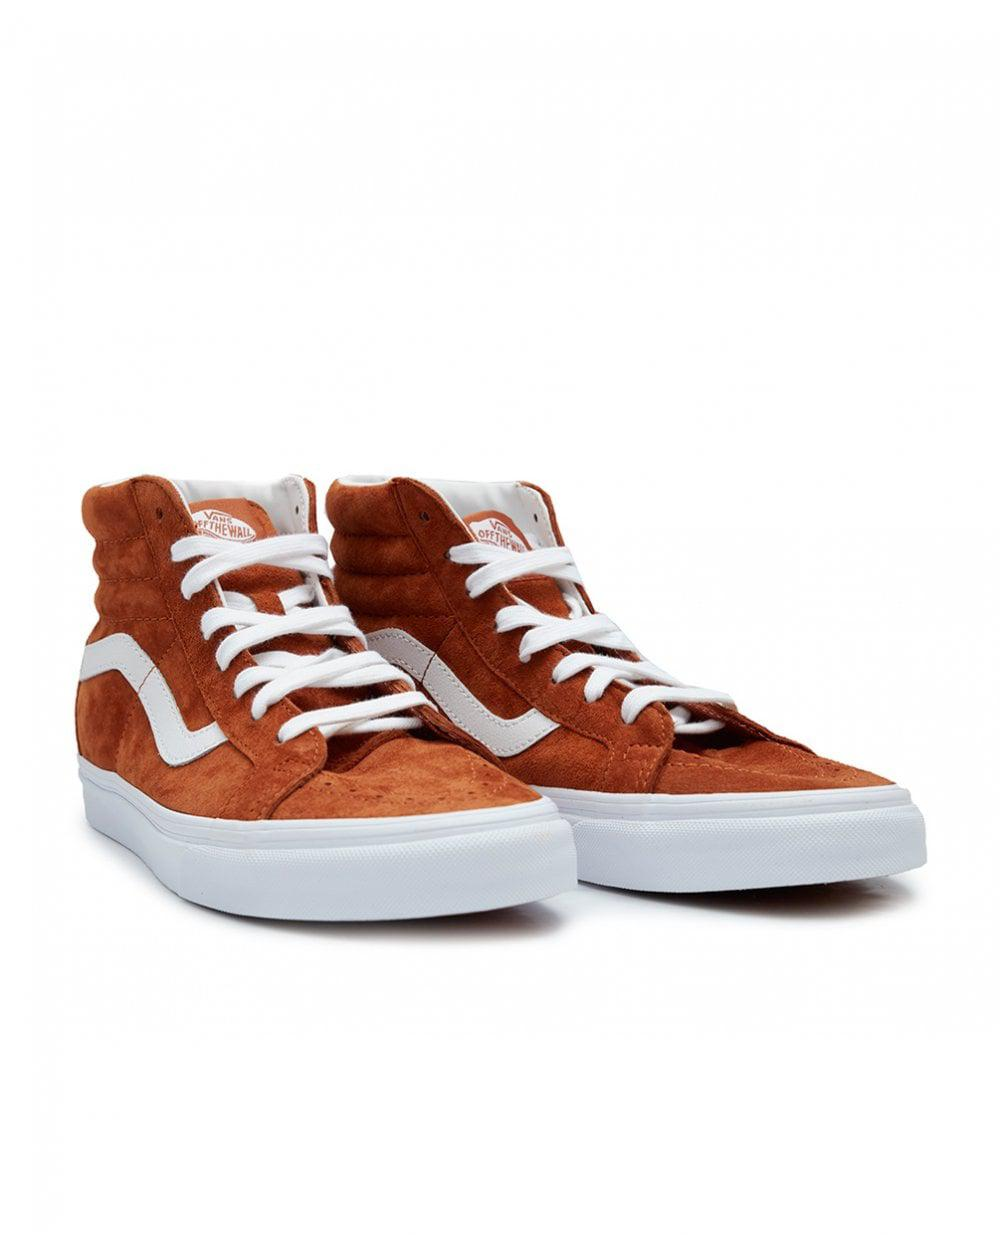 6b09e6afed Vans Skate Hi Re-issue Suede Trainers in Brown for Men - Lyst